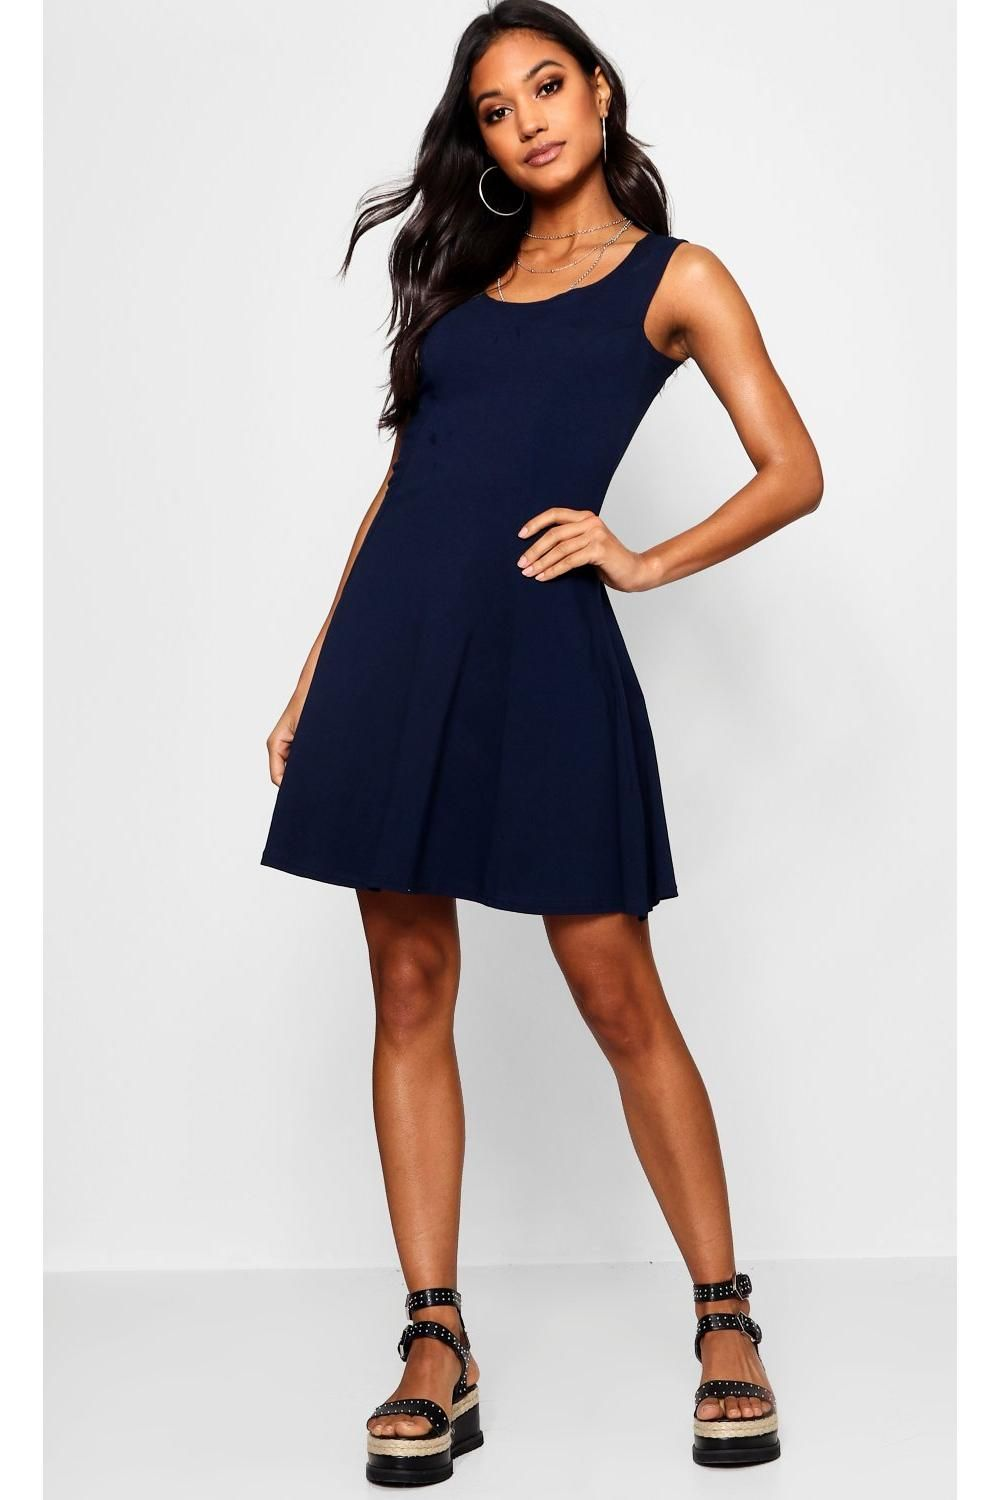 52c212daf59a3 Click here to find out about the Sara Seam Detail Skater Dress from Boohoo,  part